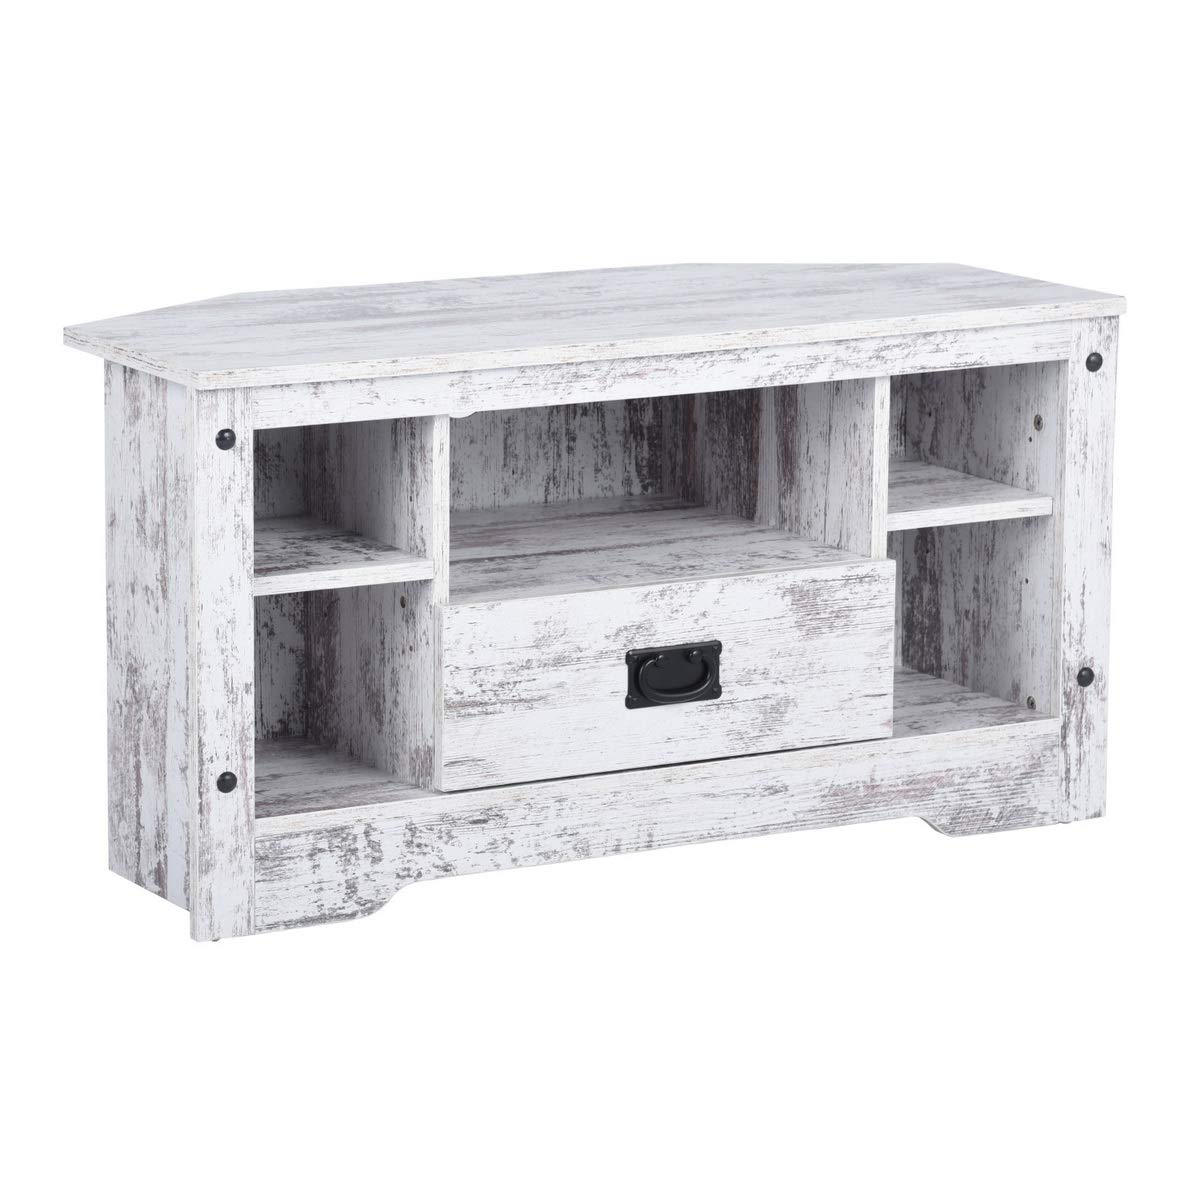 GreenForest TV Stand, 35.4 Vintage TV Console Entertainment Center Cabinet with Drawer for Small Spaces, White